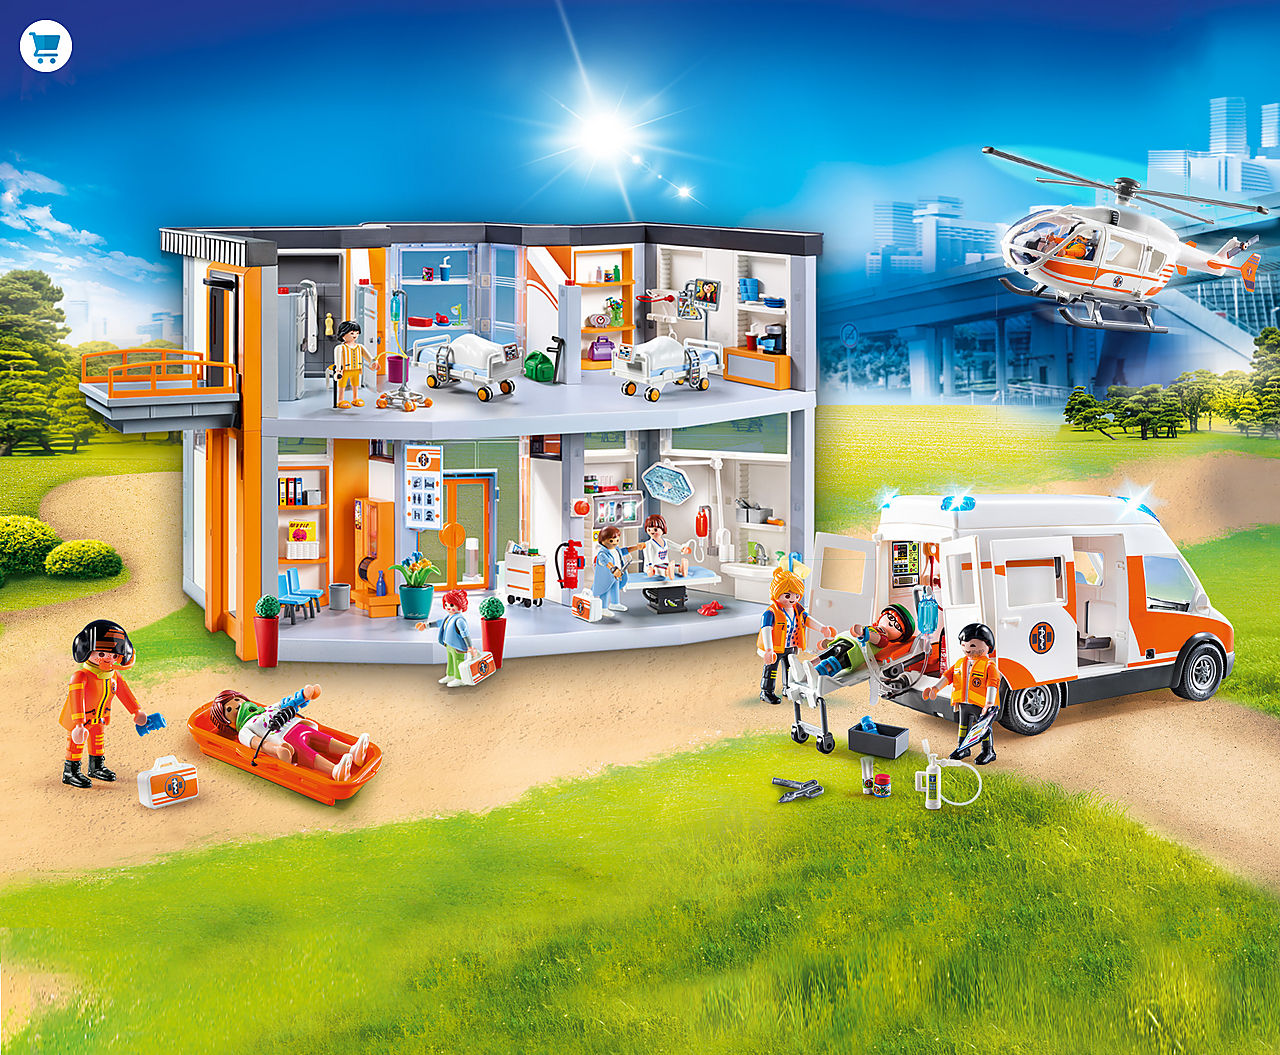 'Find the newest PLAYMOBIL Hospital Playsets